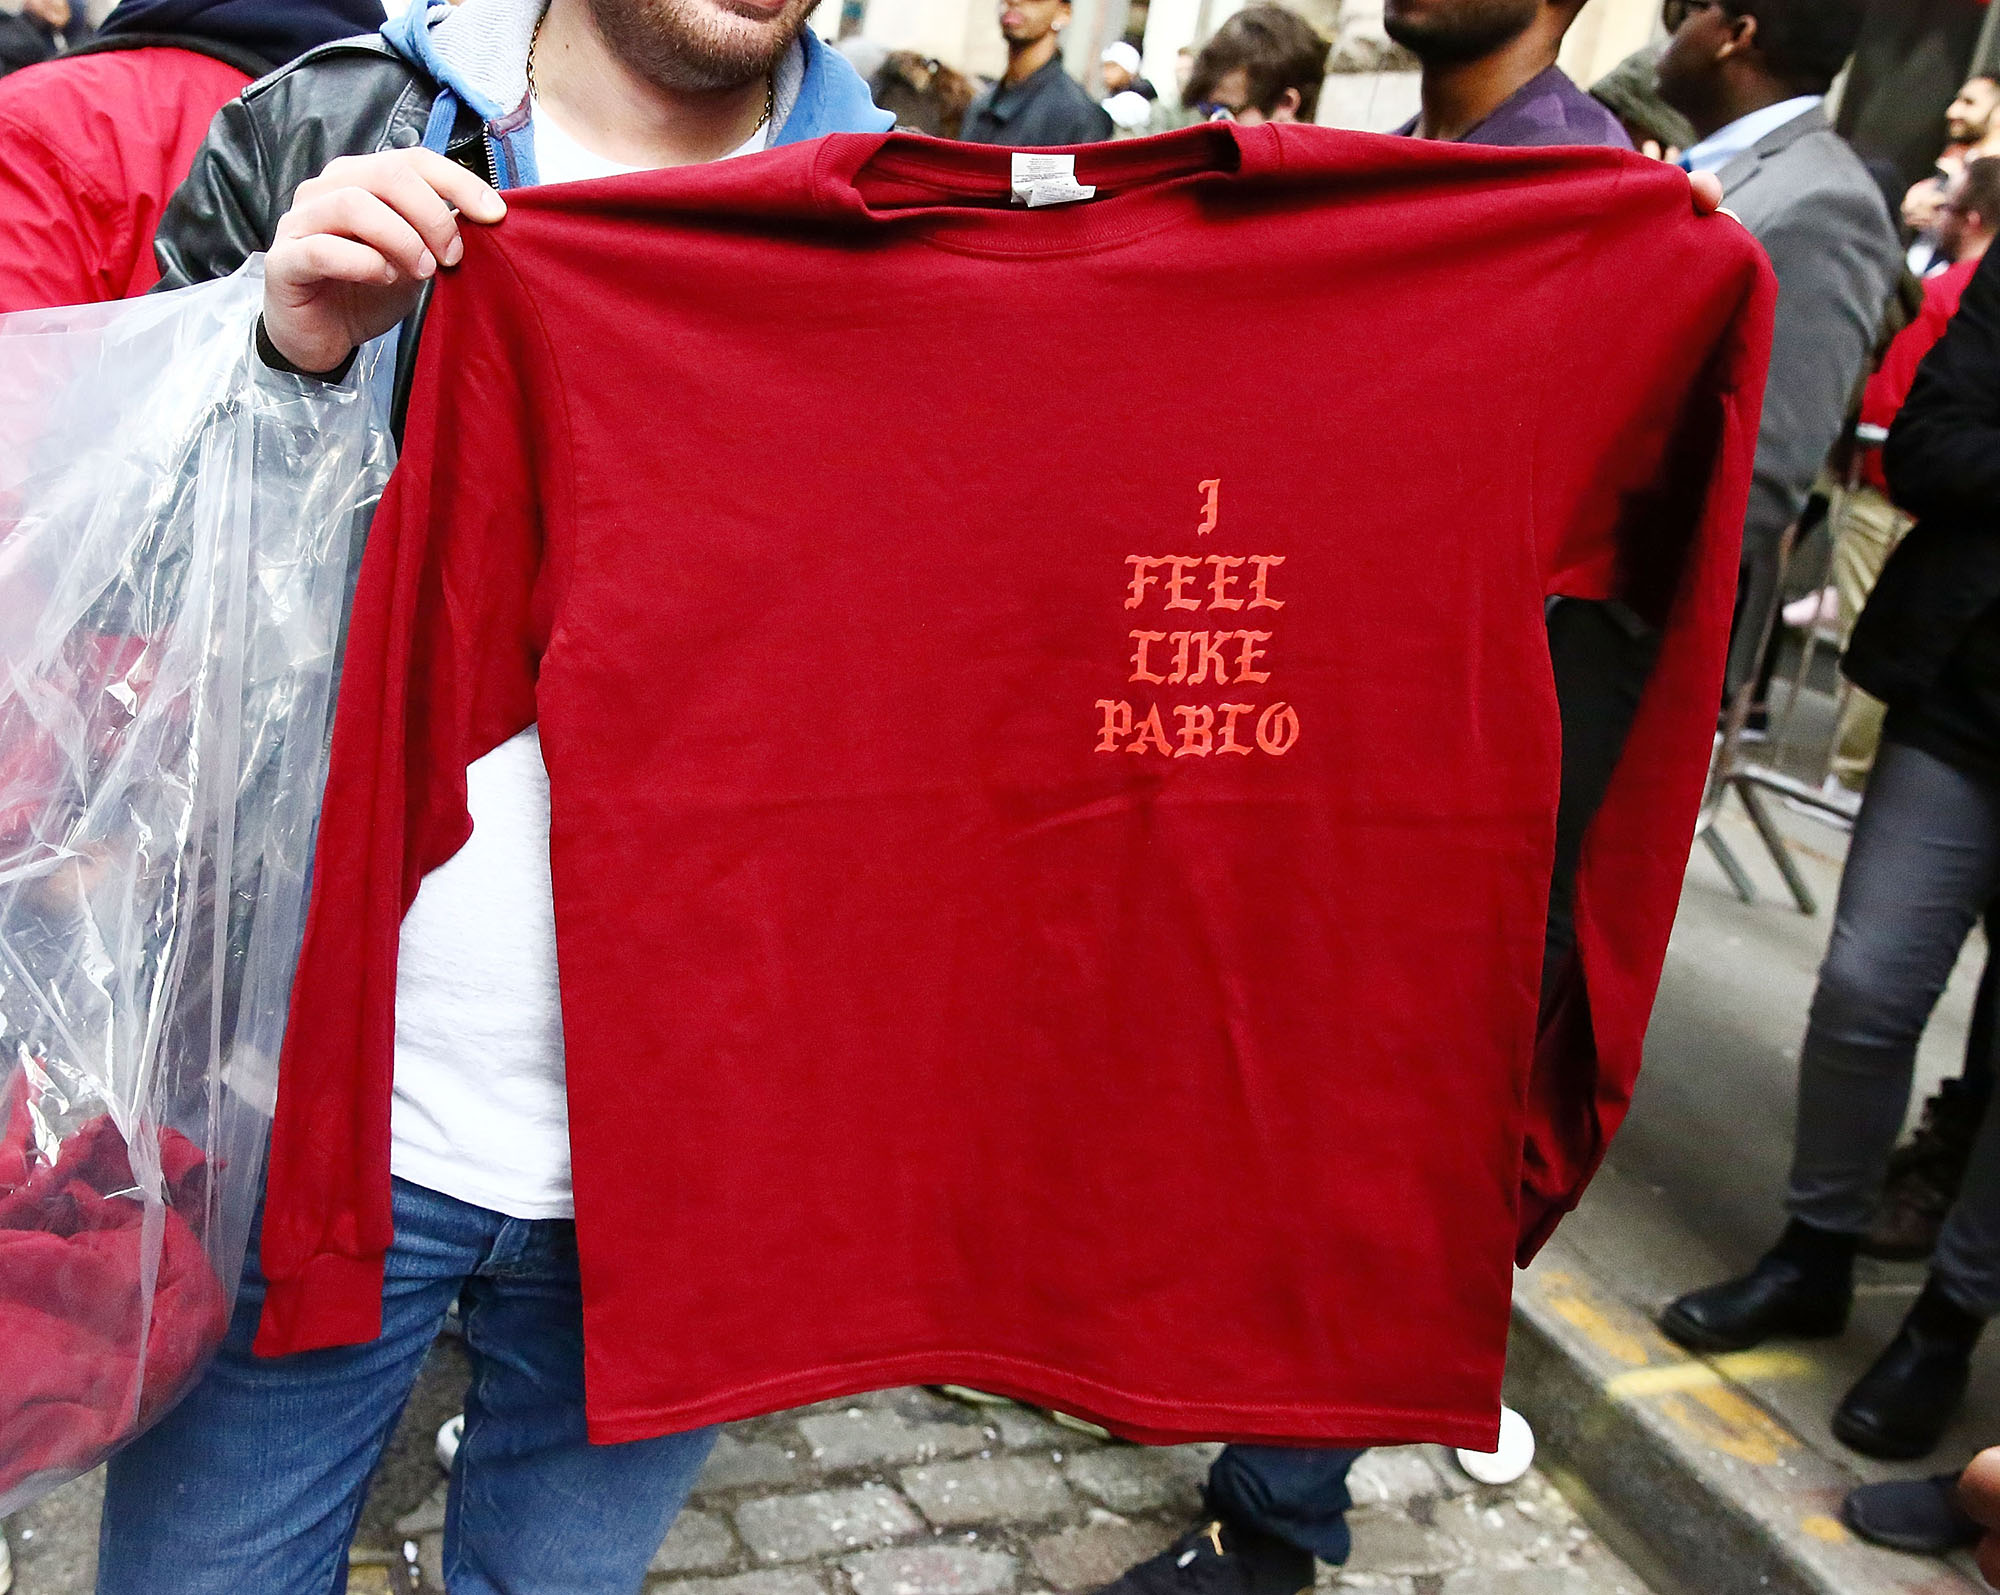 Shirts designed by Kanye West are displayed outside 83 Wooster Street in Soho at the Kanye West   Pablo Pop-Up Shop  In Manhattan on March 18, 2016 in New York City.  (Photo by Astrid Stawiarz/Getty Images)